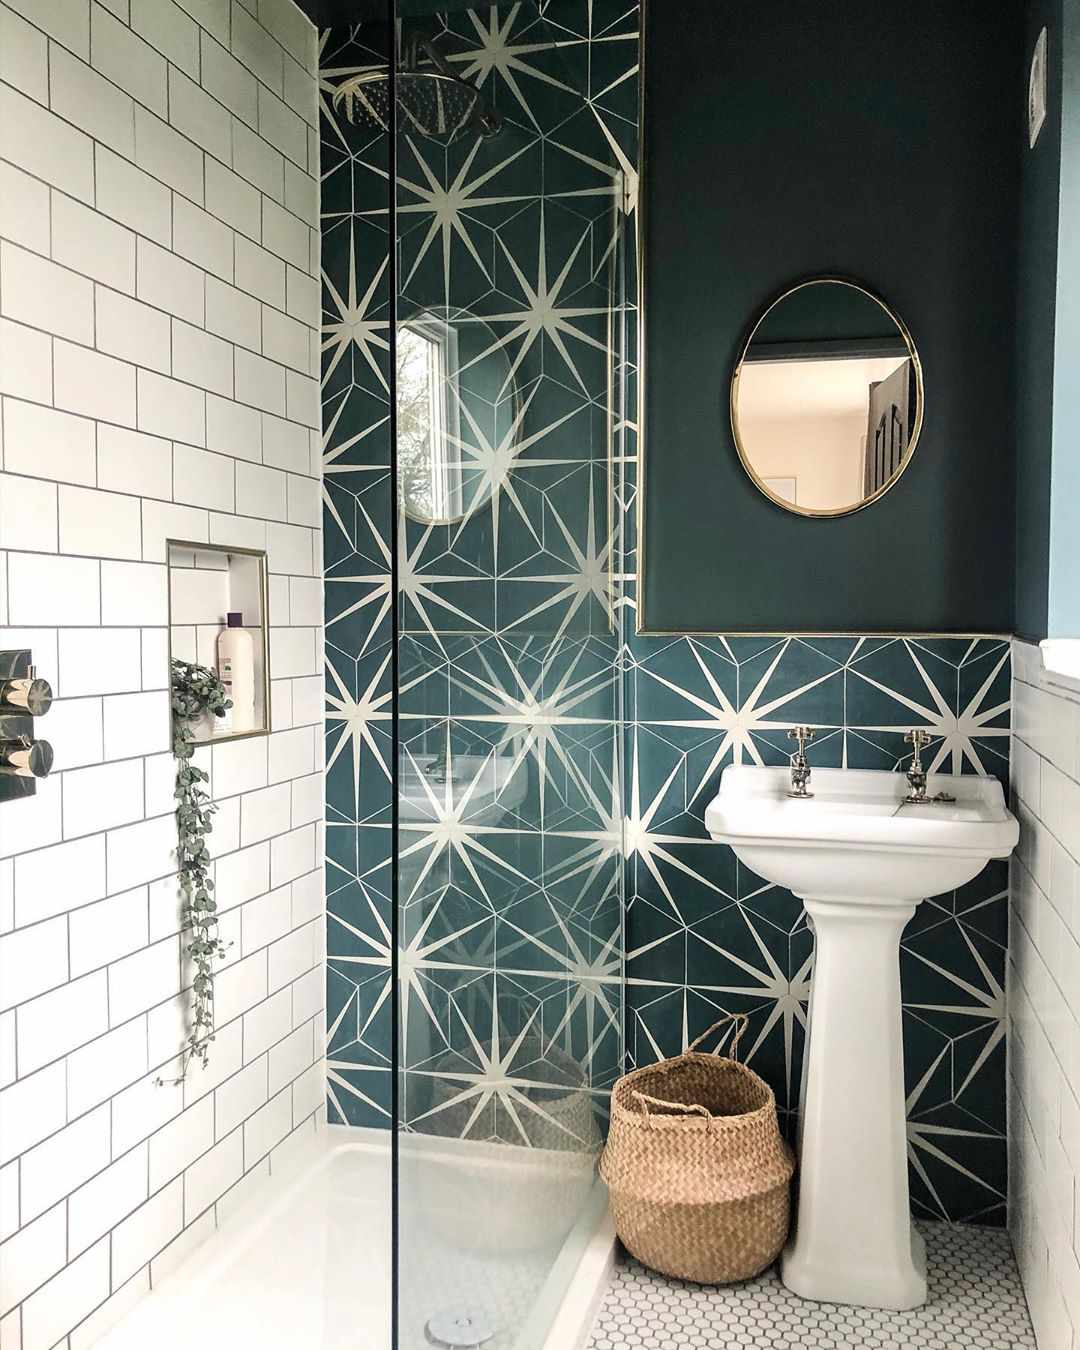 Bathroom with green starburst wall